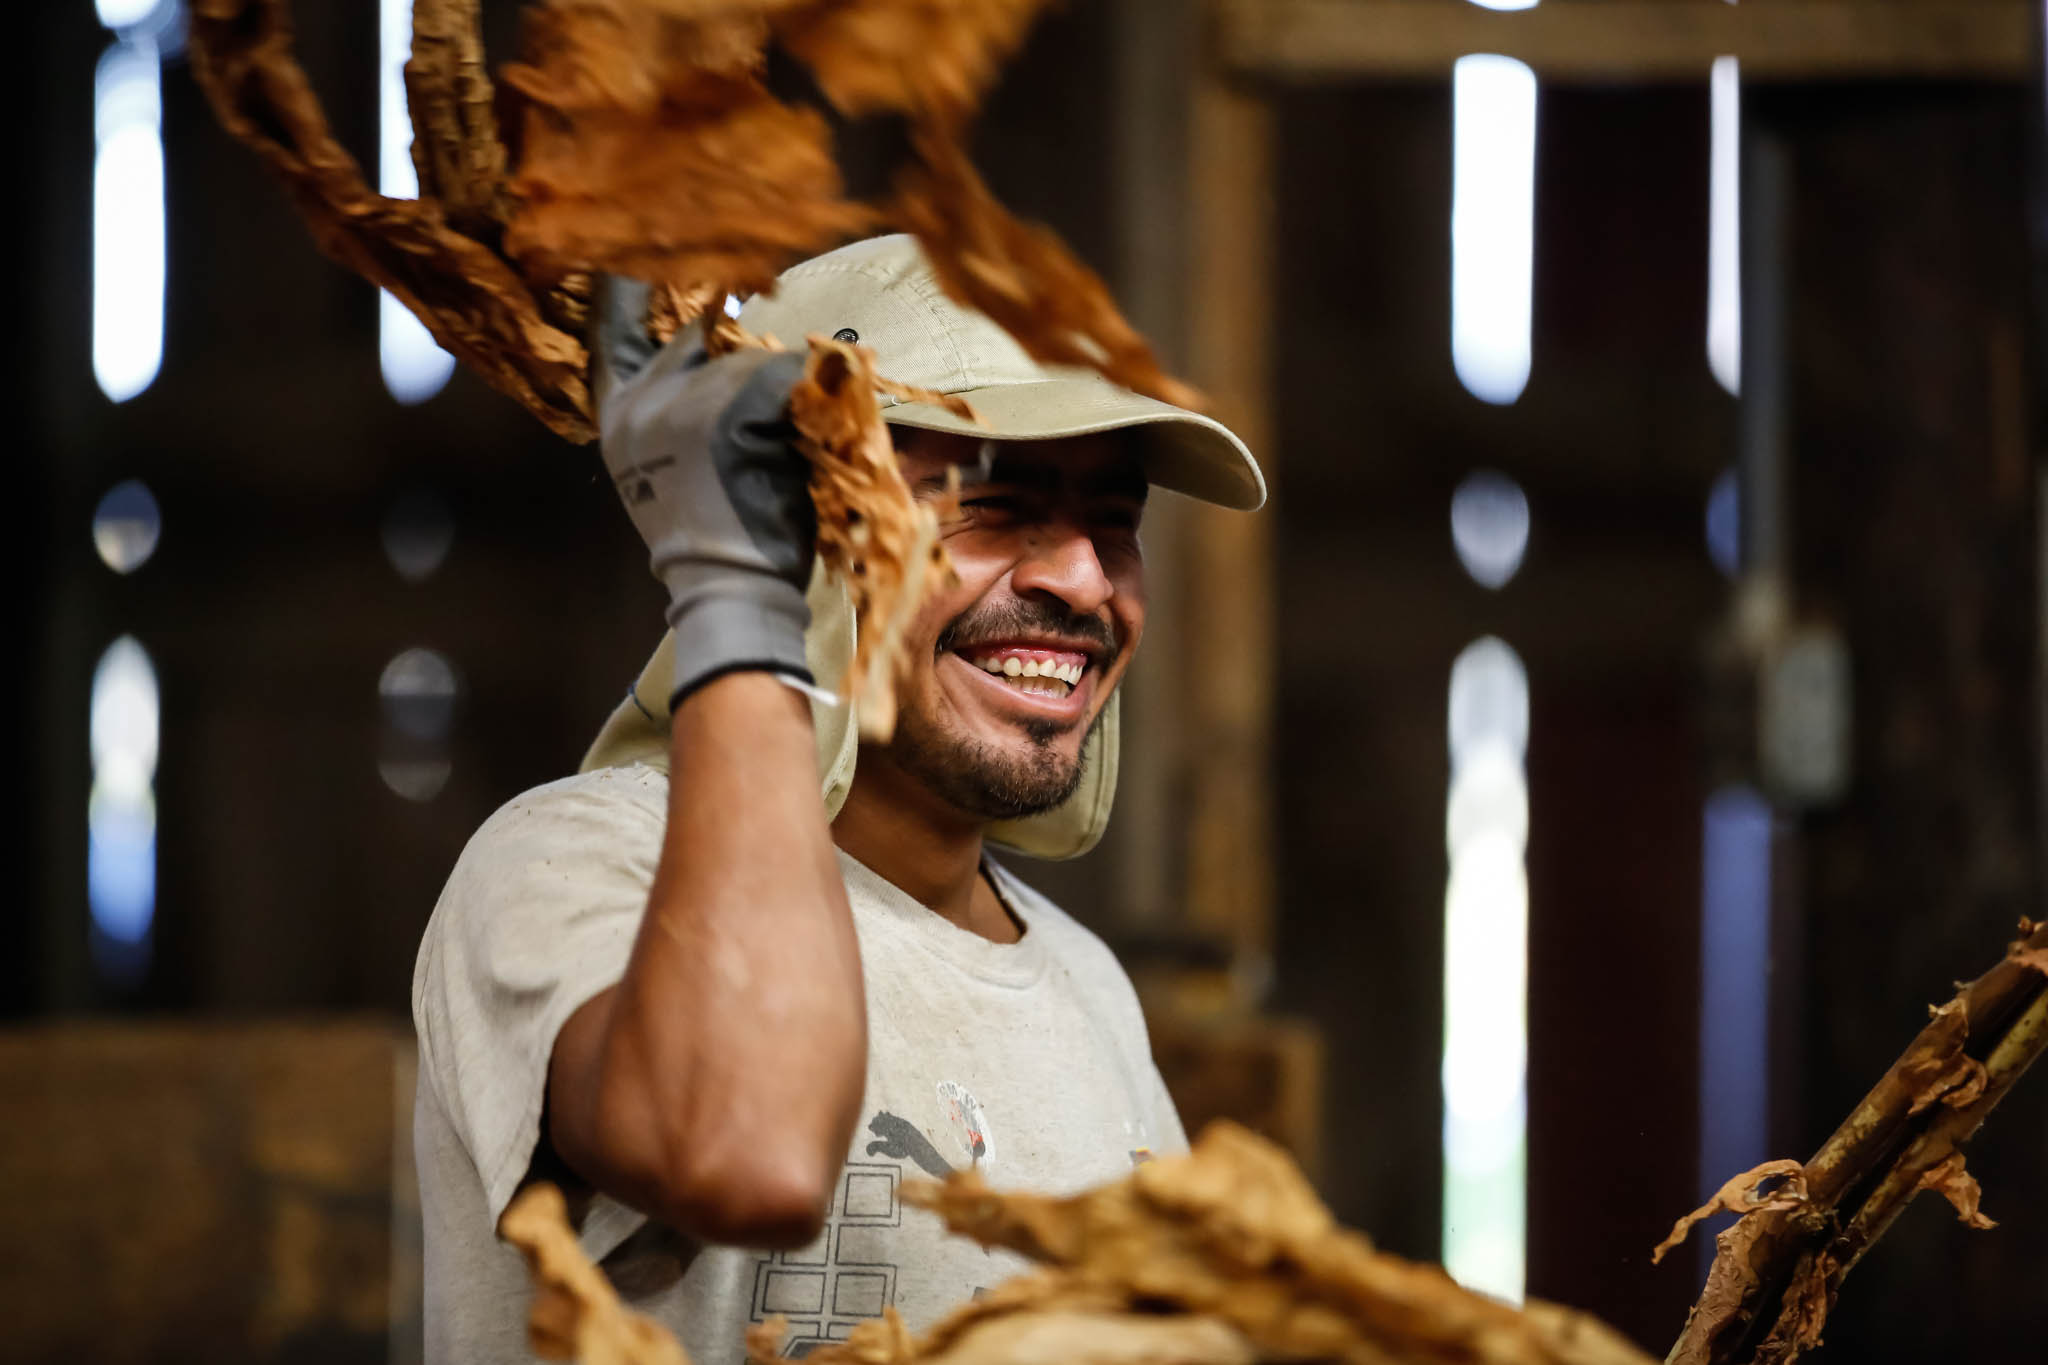 "Javi Crúz, a 34-year-old migrant worker from Mexico, is proud to have a job in the U.S. ""Working on this farm gives me an opportunity to give back to my family. Its hard to find this opporutnities back home,"" he says."